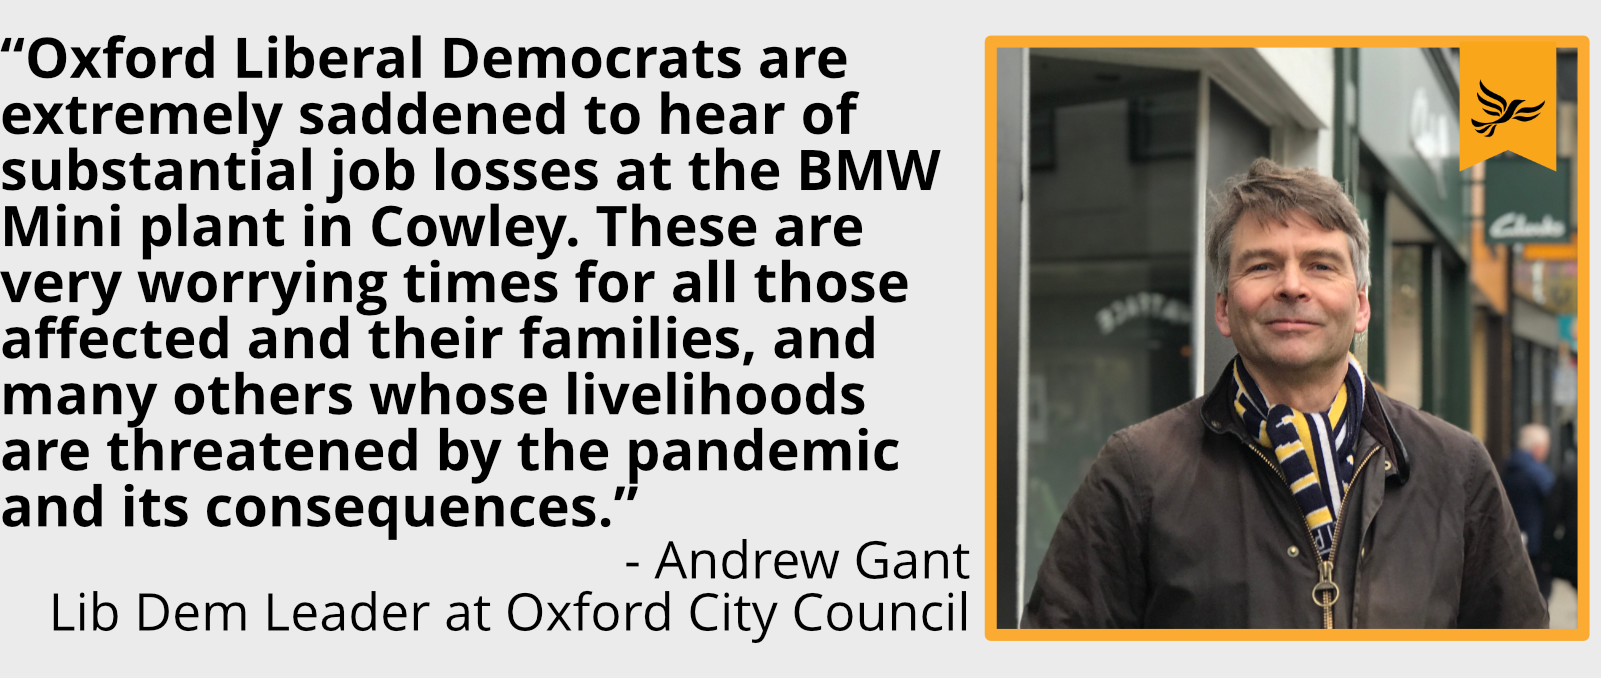 """Oxford Liberal Democrats are extremely saddened to hear of substantial job losses at the BMW Mini plant in Cowley. These are very worrying times for all those affected and their families, and many others whose livelihoods are threatened by the pandemic and its consequences."